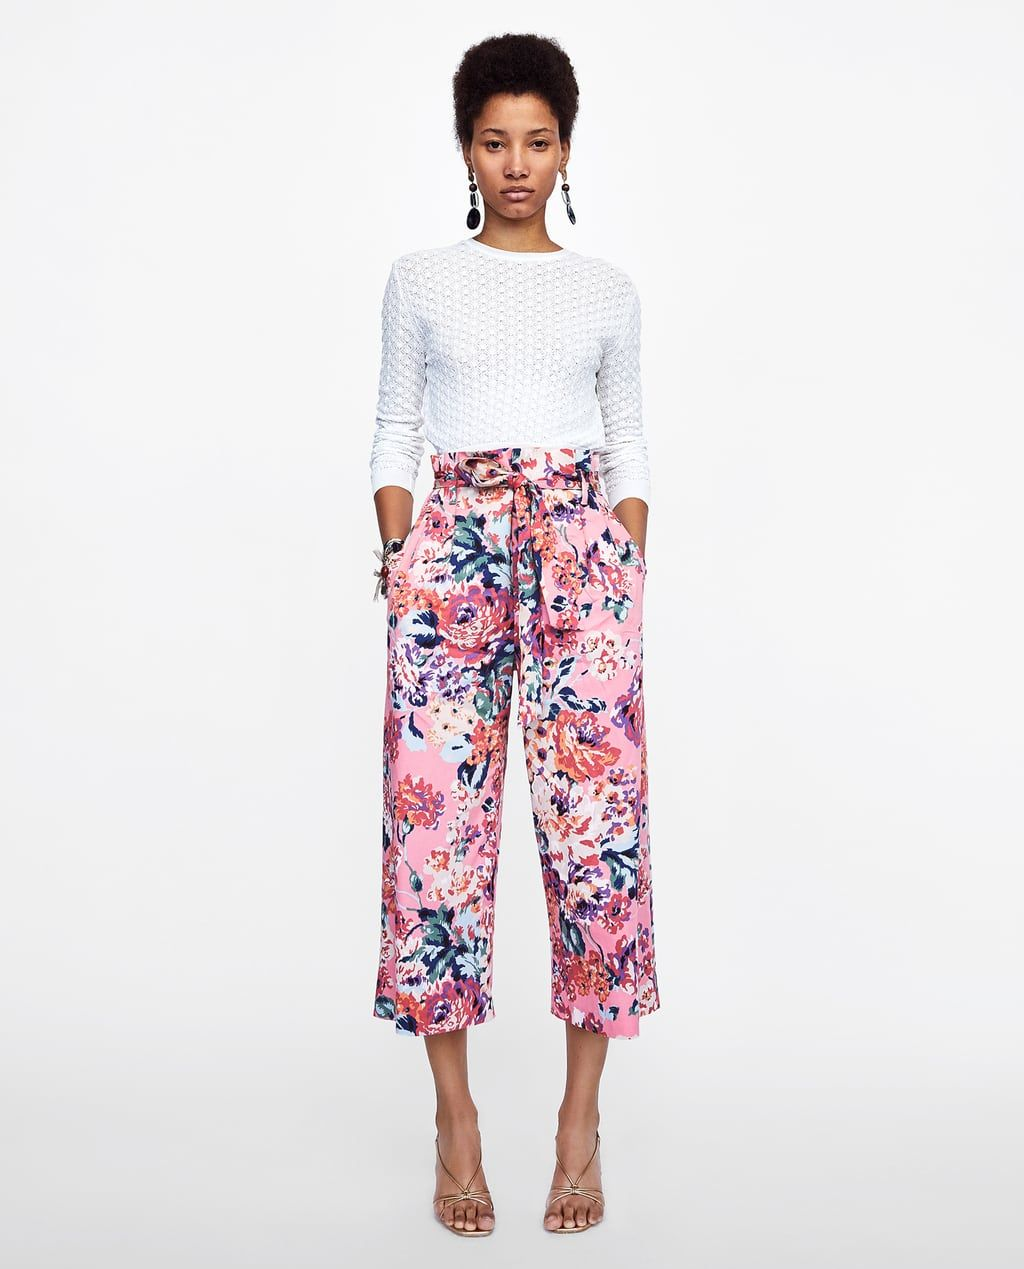 57c38941 Image 1 of FLORAL PRINT PANTS WITH BELT from Zara | CatalogueAdore ...